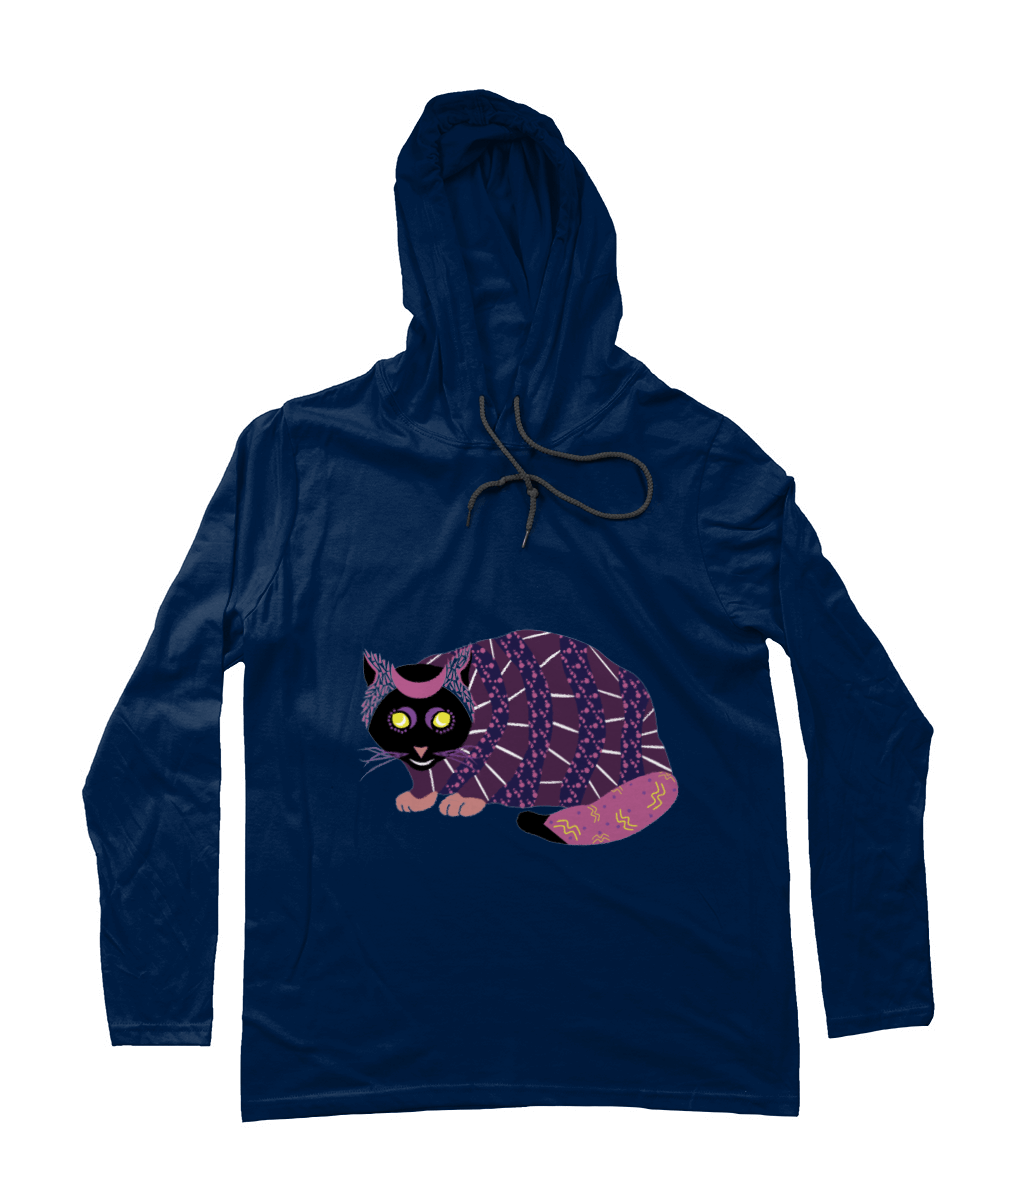 Abstract Cat_Long-Sleeved [NAVY] Hooded Men's T-Shirt